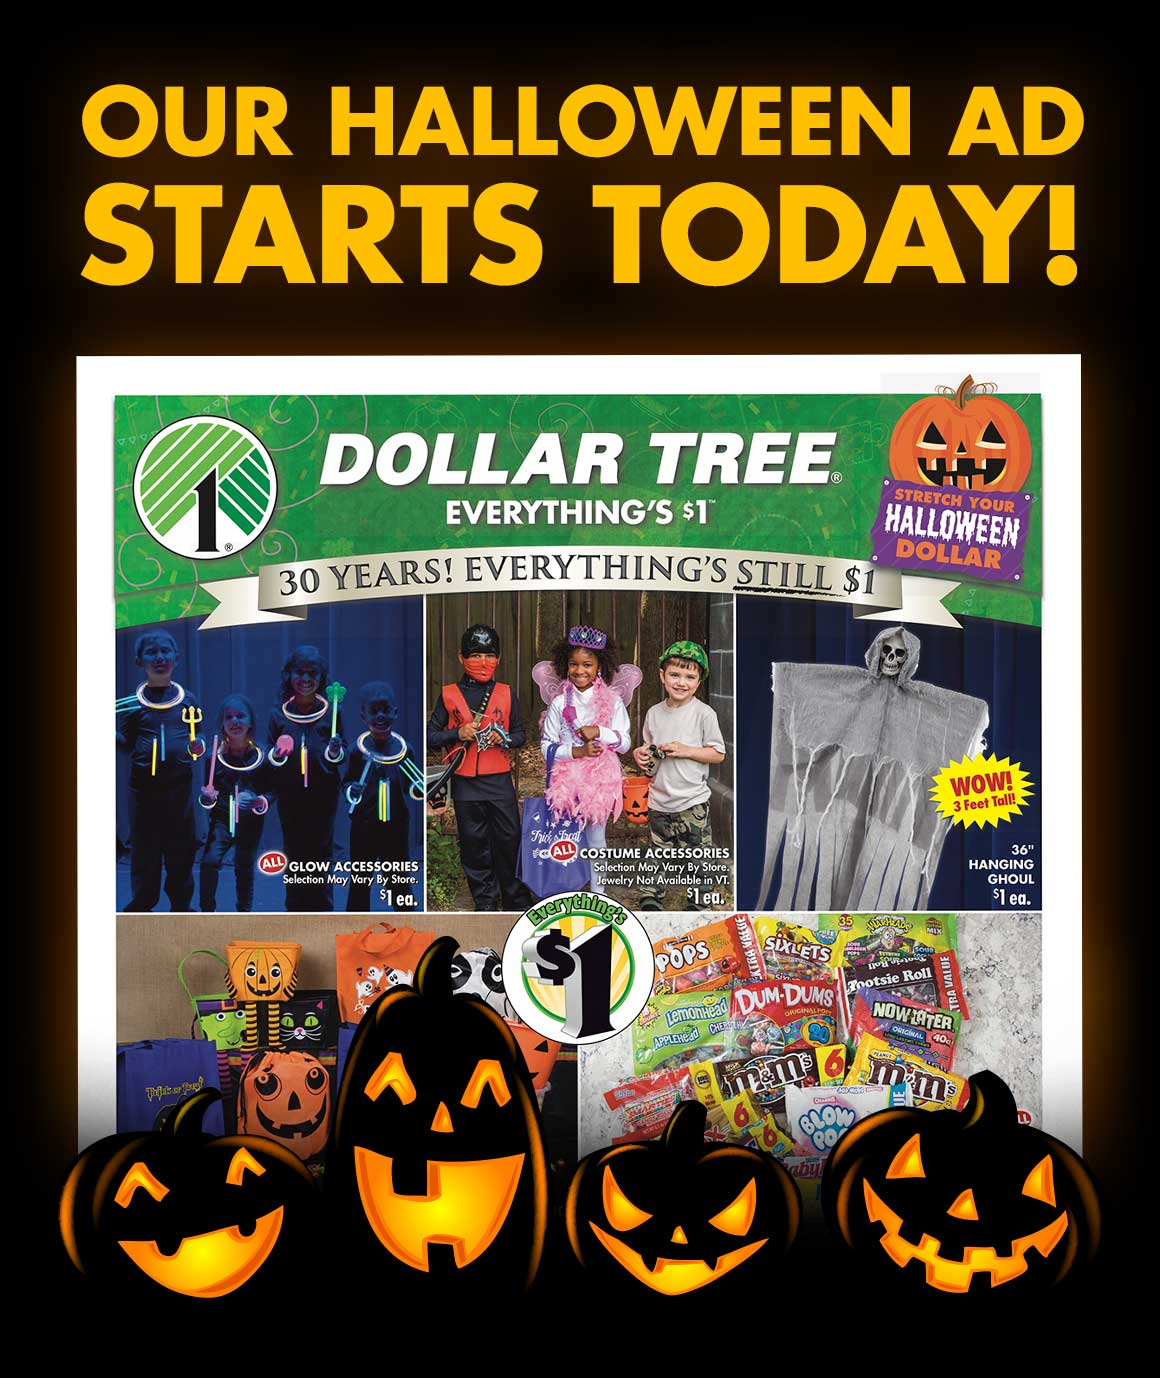 Dollar Tree Store Locator: Dollar Tree: Save 10% In Stores Today Only!